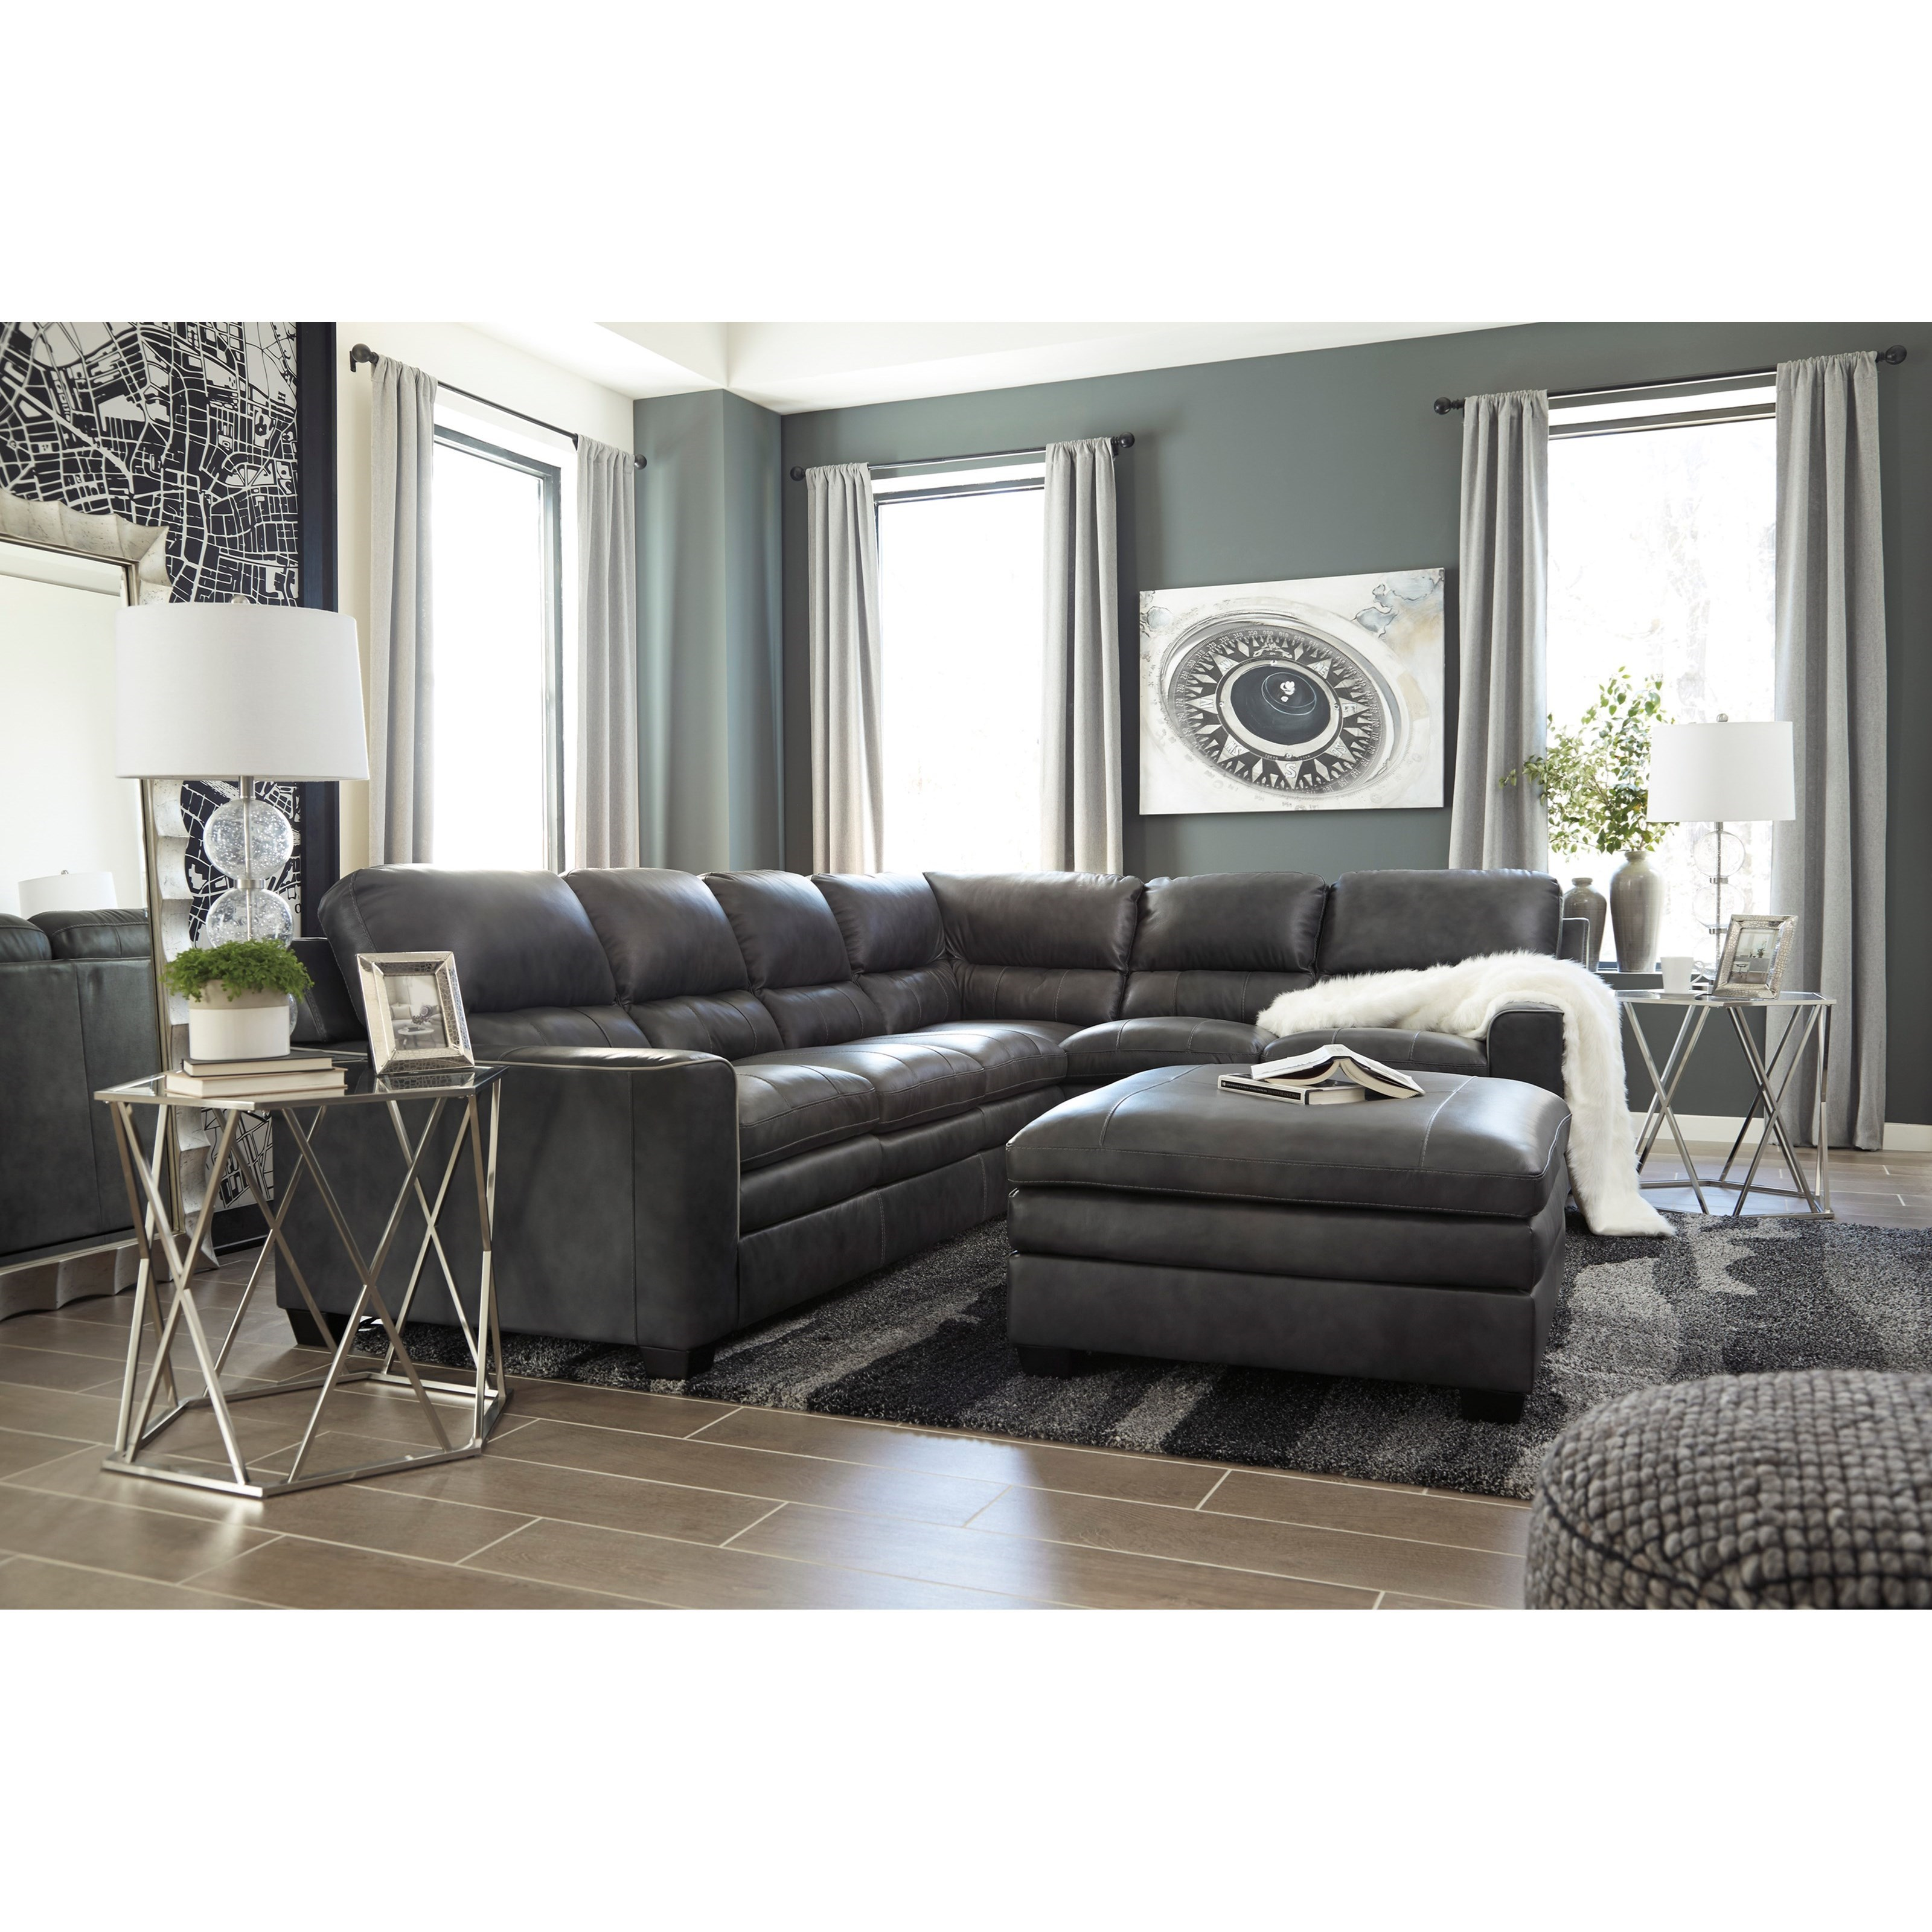 ... Design By Ashley Gleason Stationary Living Room Group. Shown In:  Charcoal Gleason Charcoal Good Looking